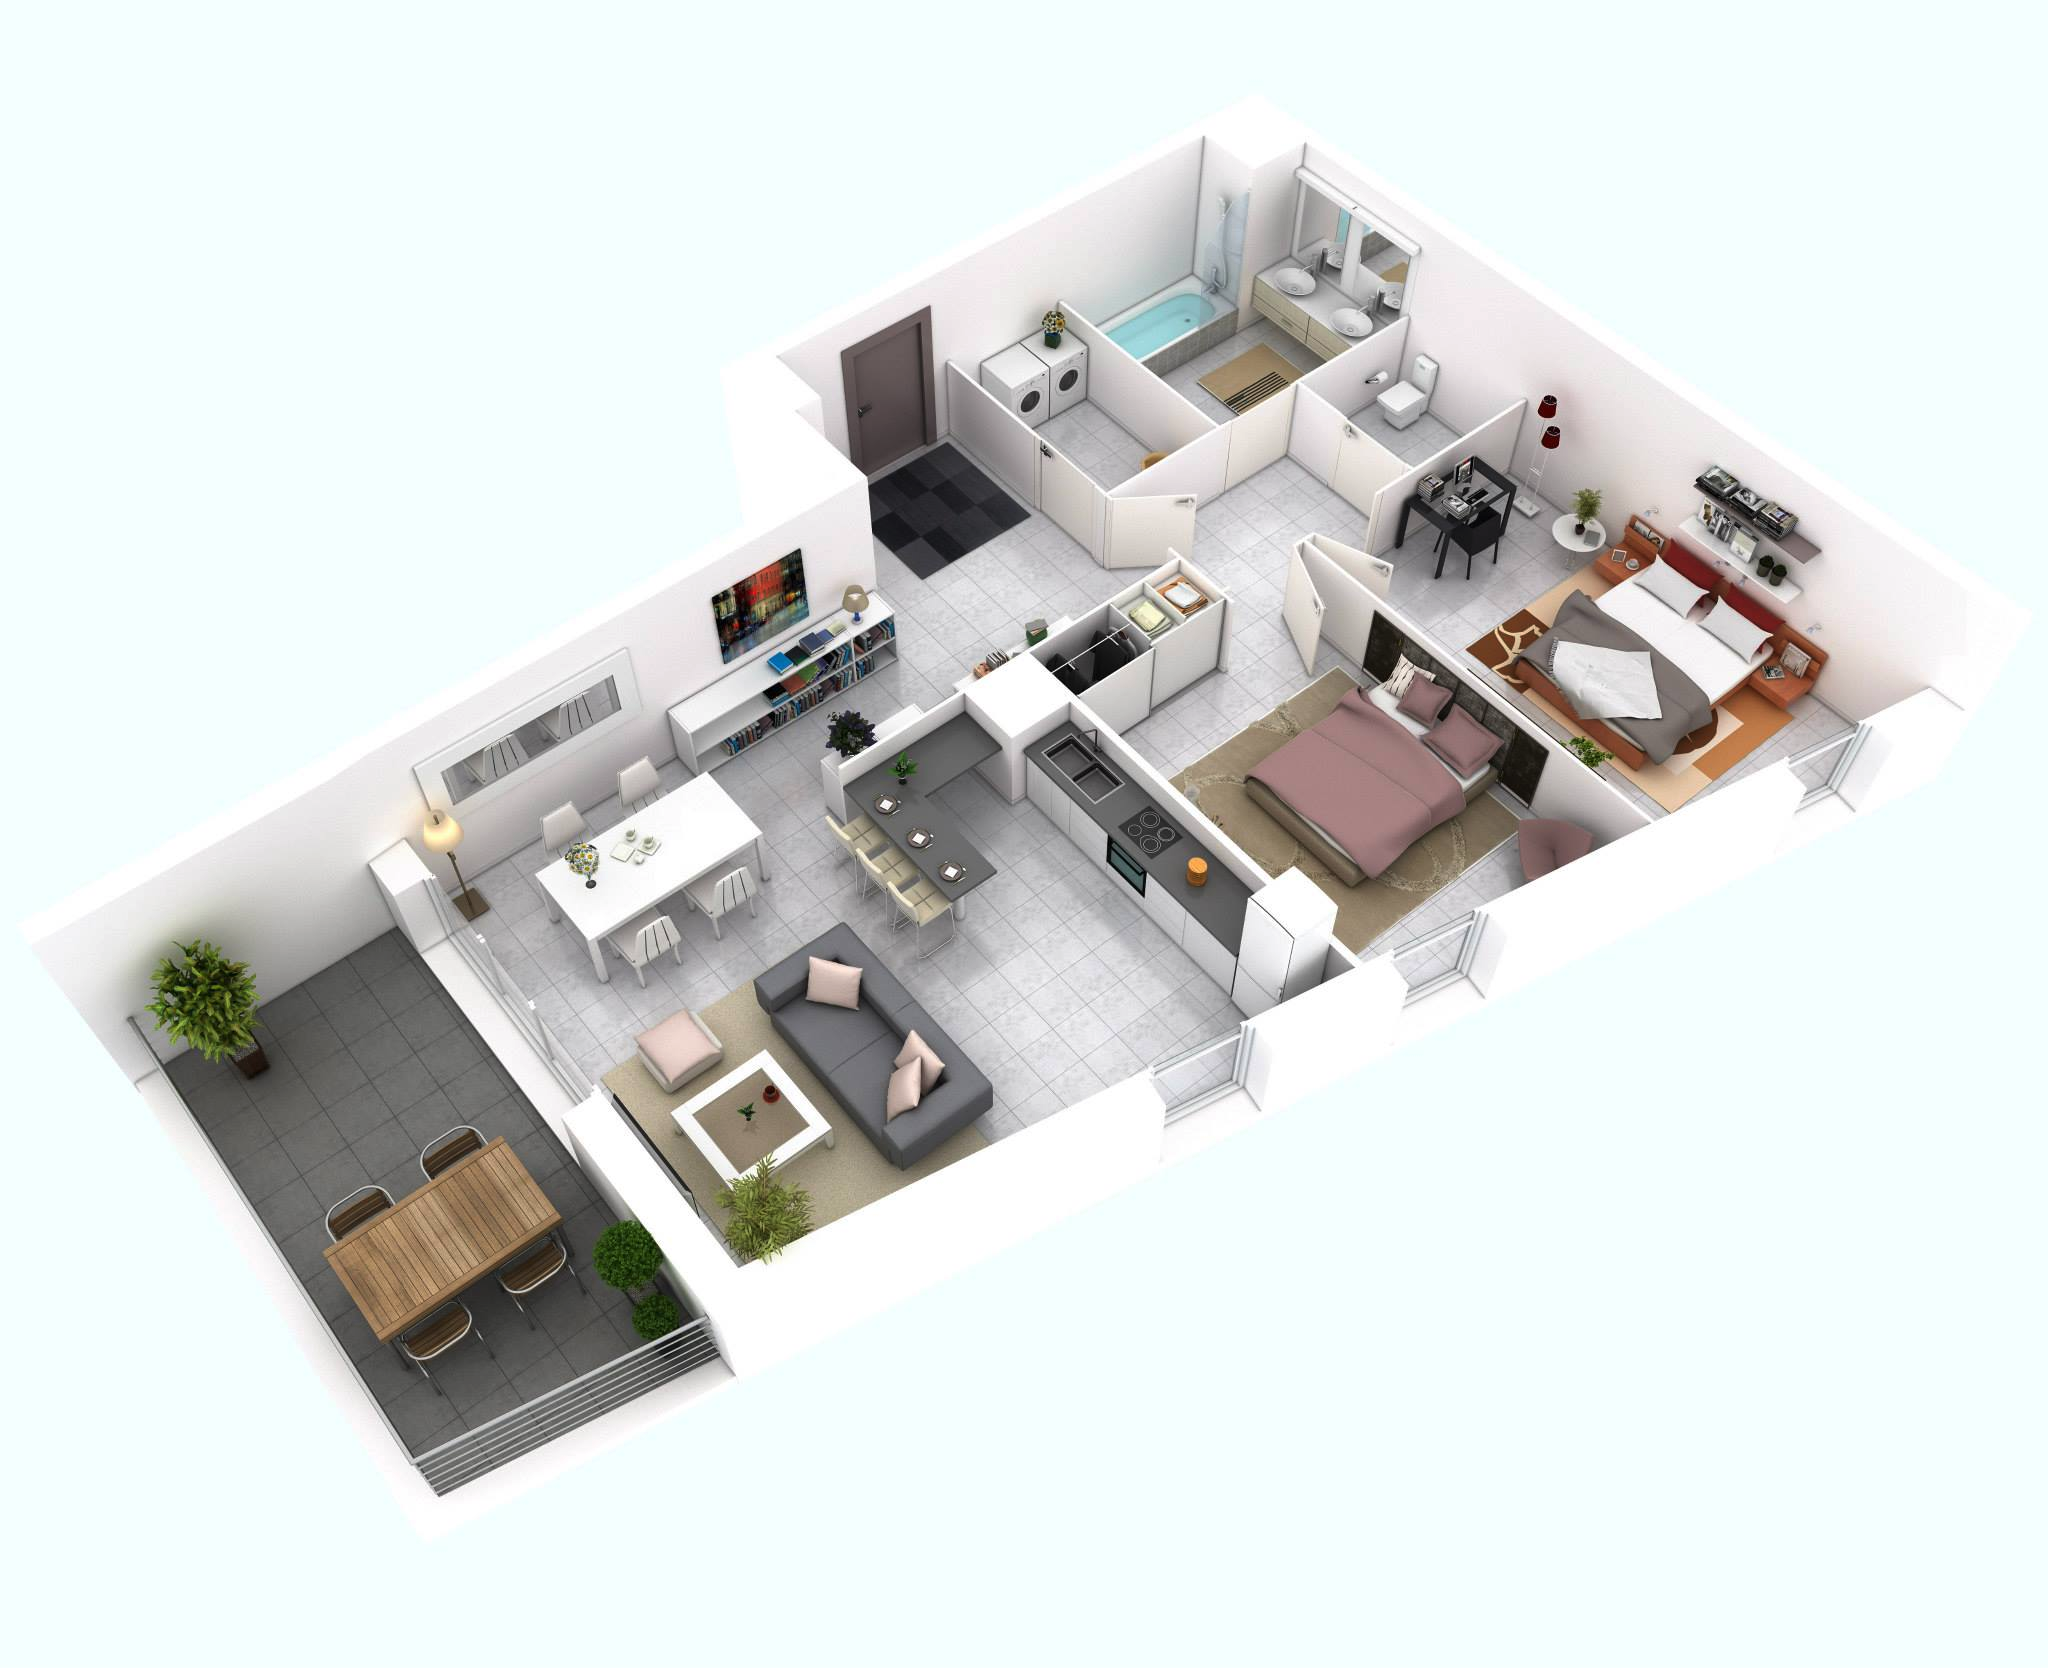 25 more 2 bedroom 3d floor plans - 3d Plan Drawing